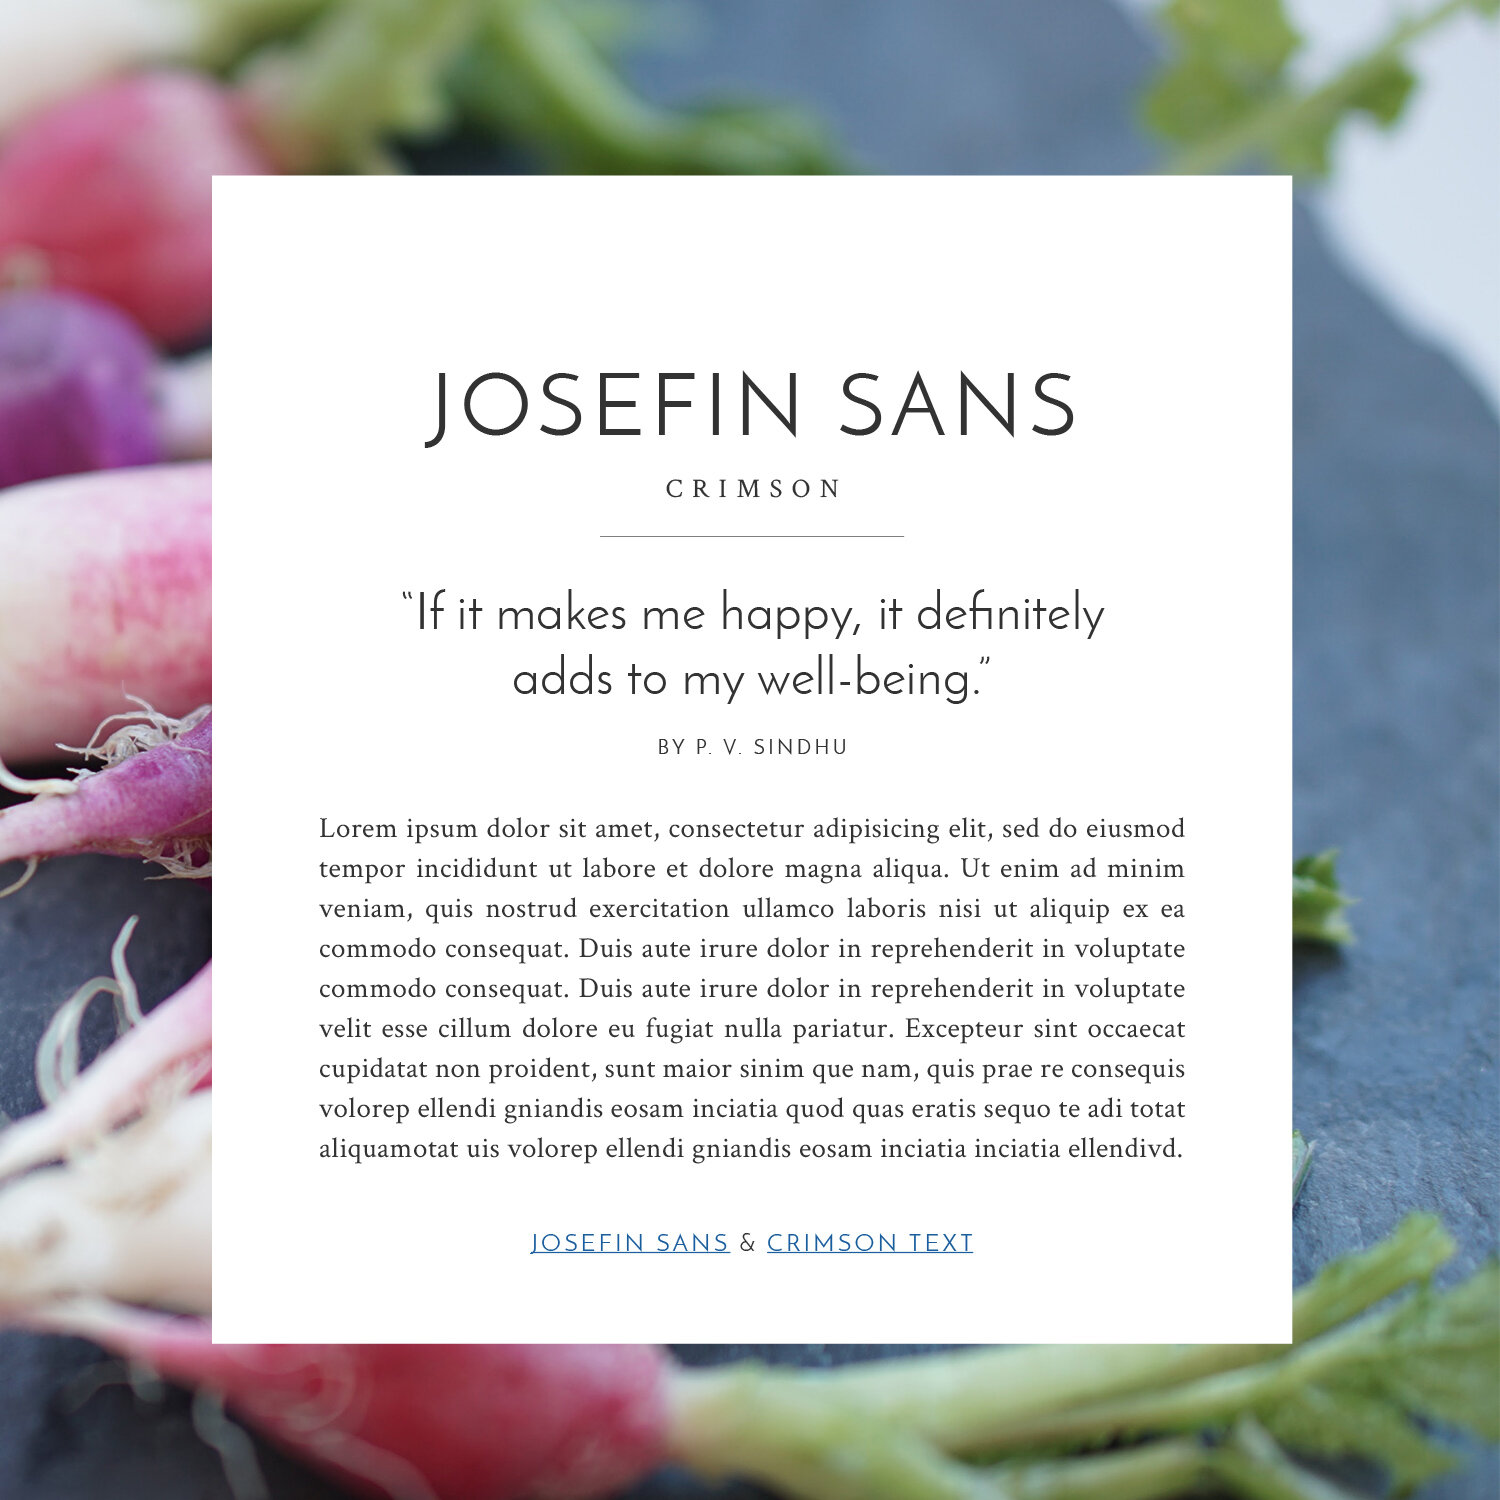 Clean and elegant Google font pairings for your brand and